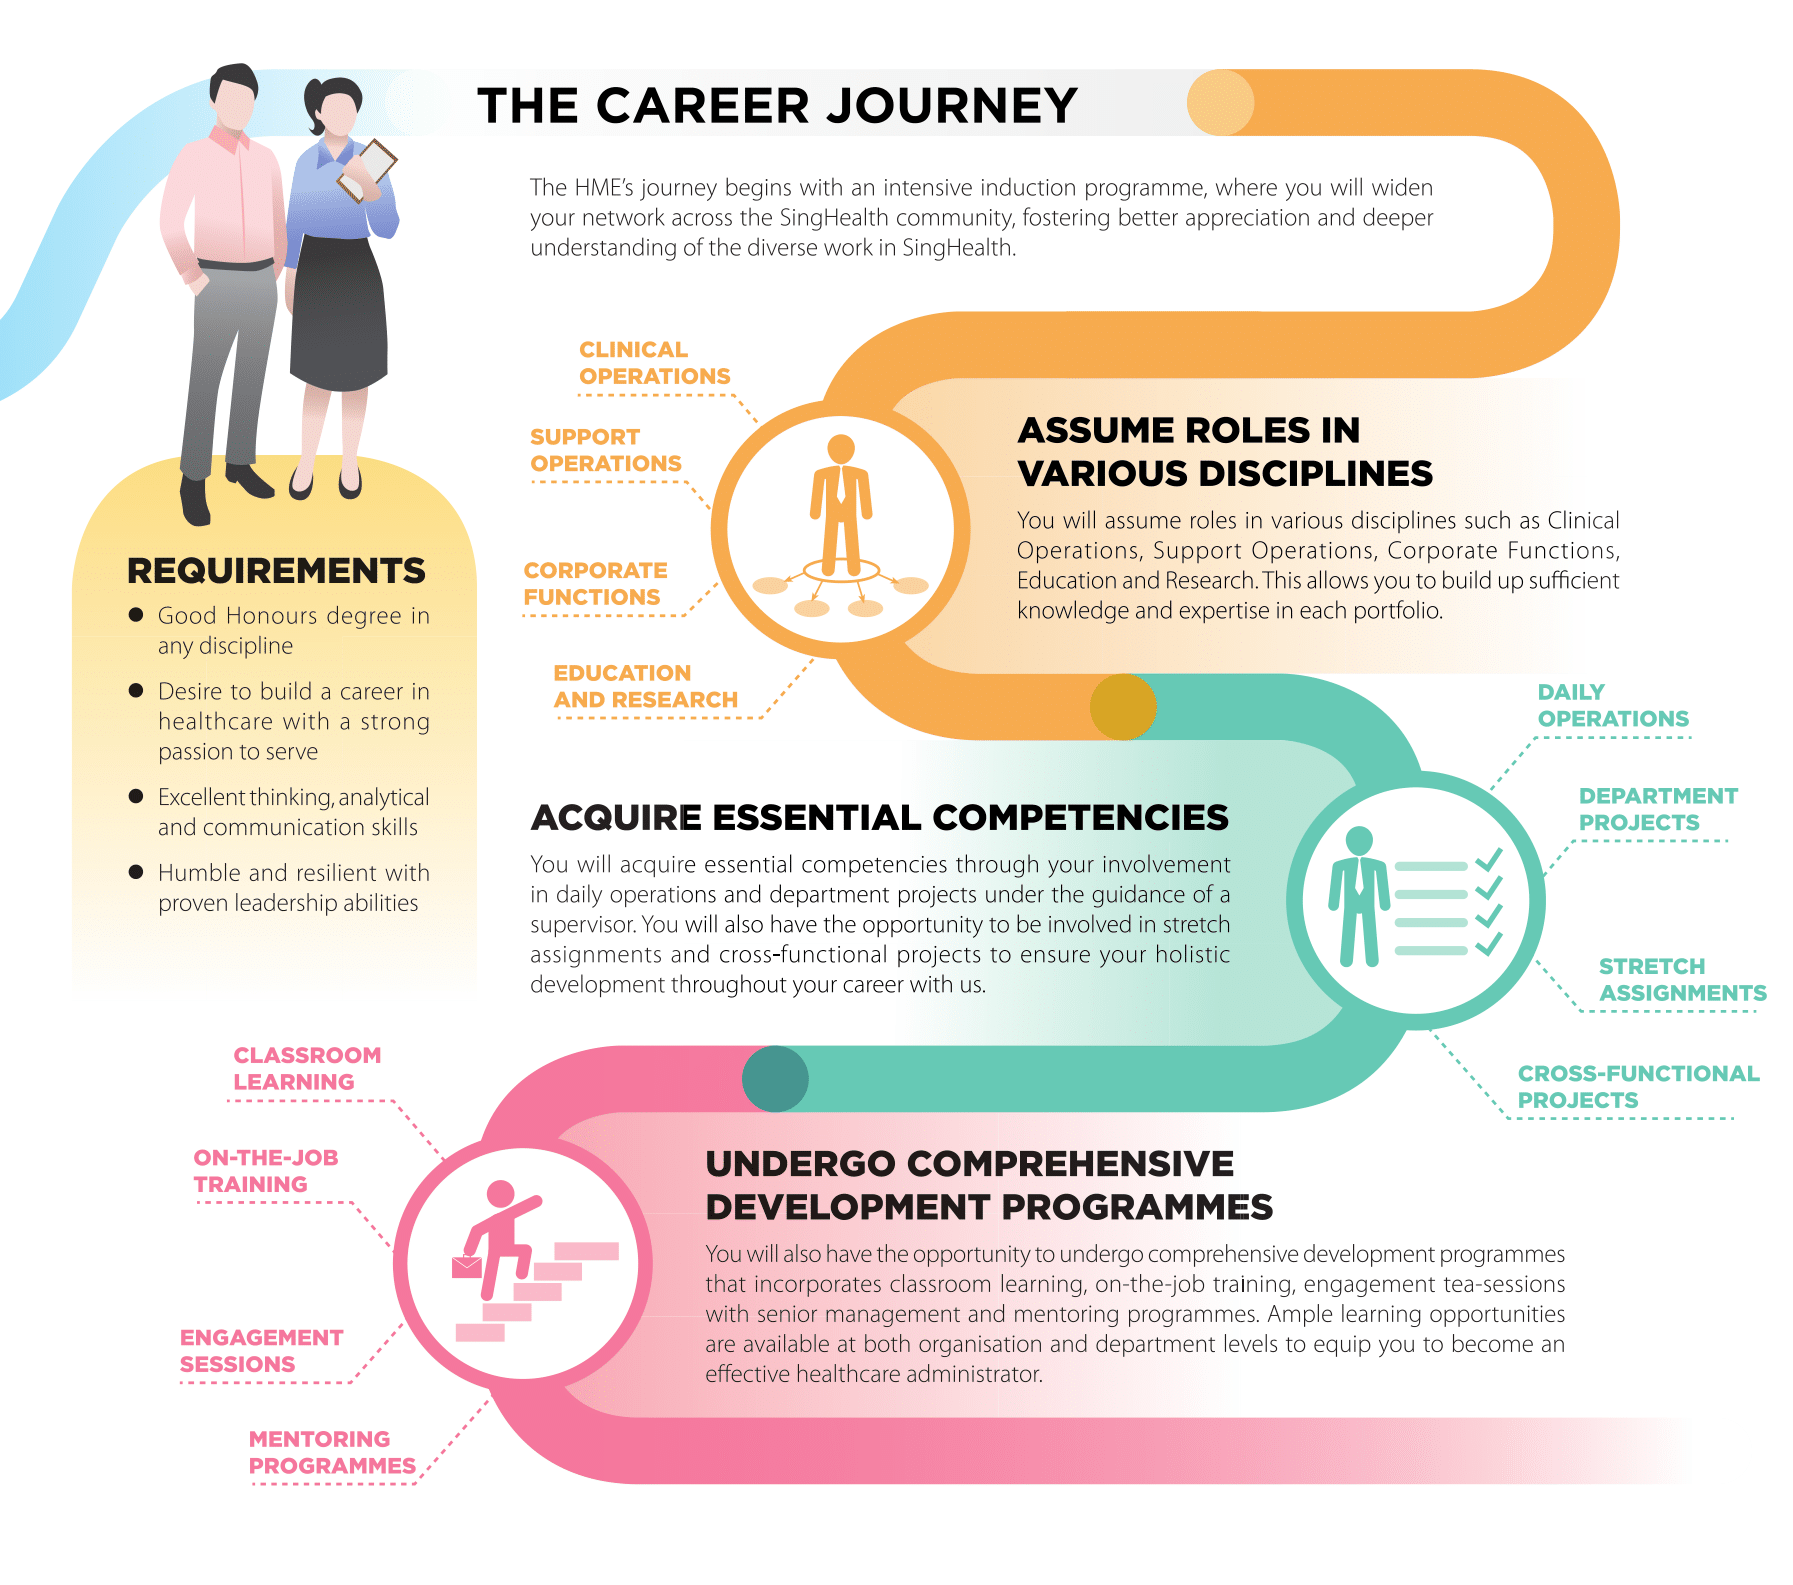 hme career journey.png